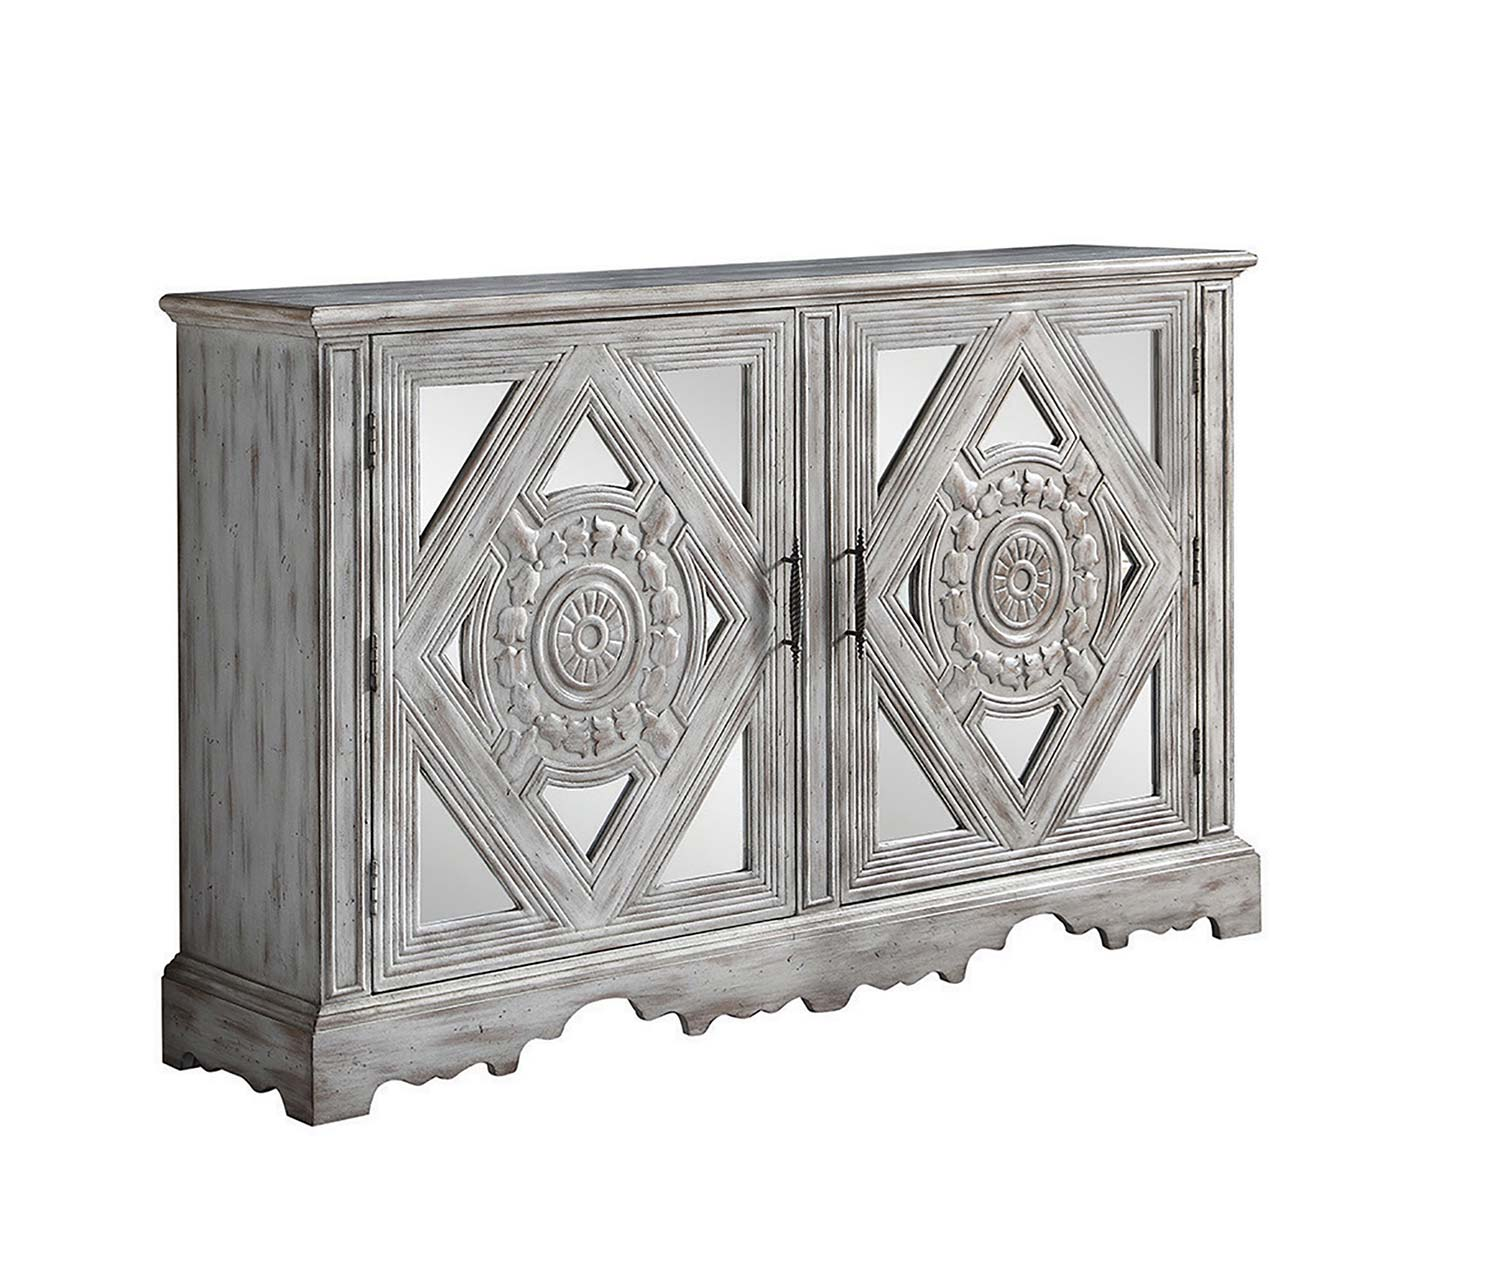 Coaster 950751 Accent Cabinet - Distressed Grey